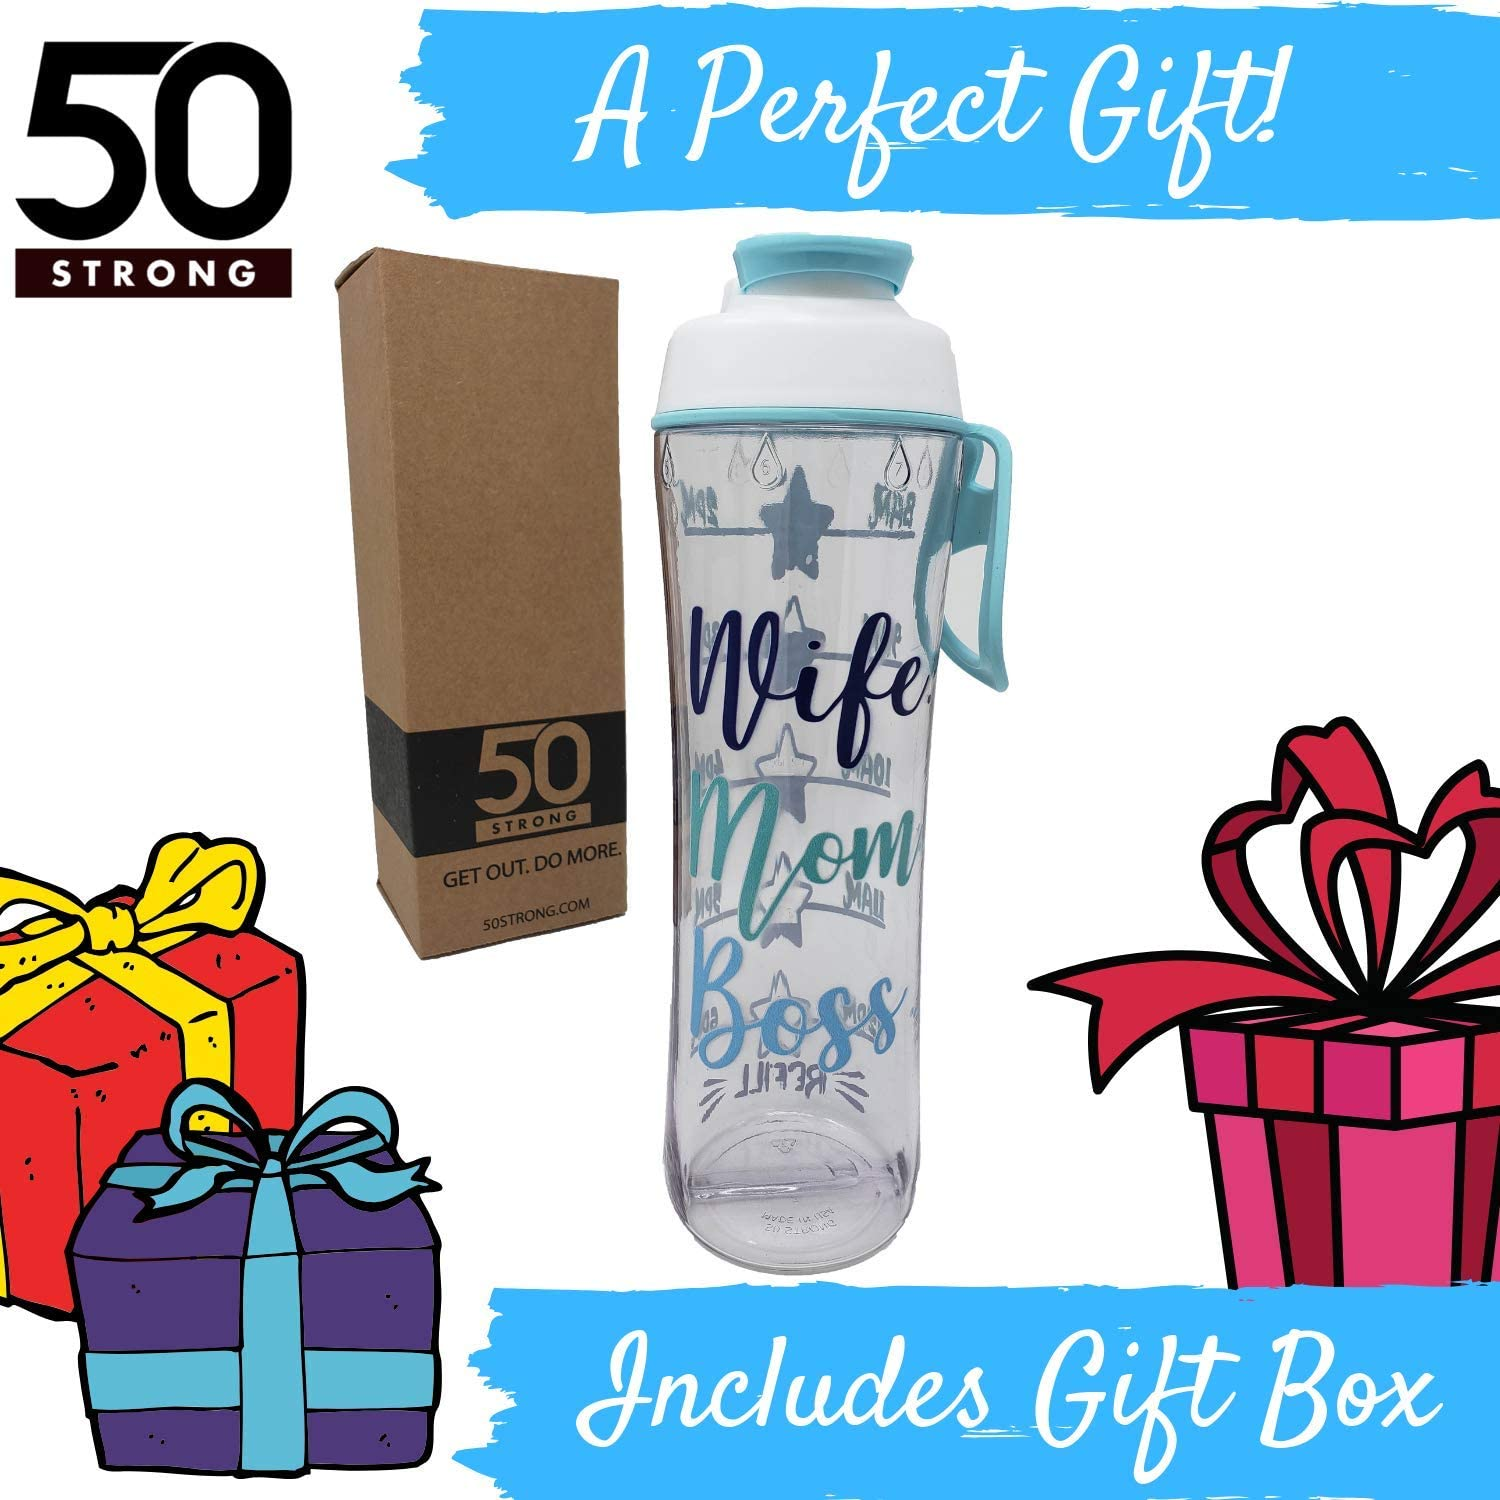 Drink More Water Daily Hours Marked Motivational Fitness Bottles Tracker Helps You Drink Water All Day -Made in USA 50 Strong BPA Free Reusable Water Bottle with Time Marker